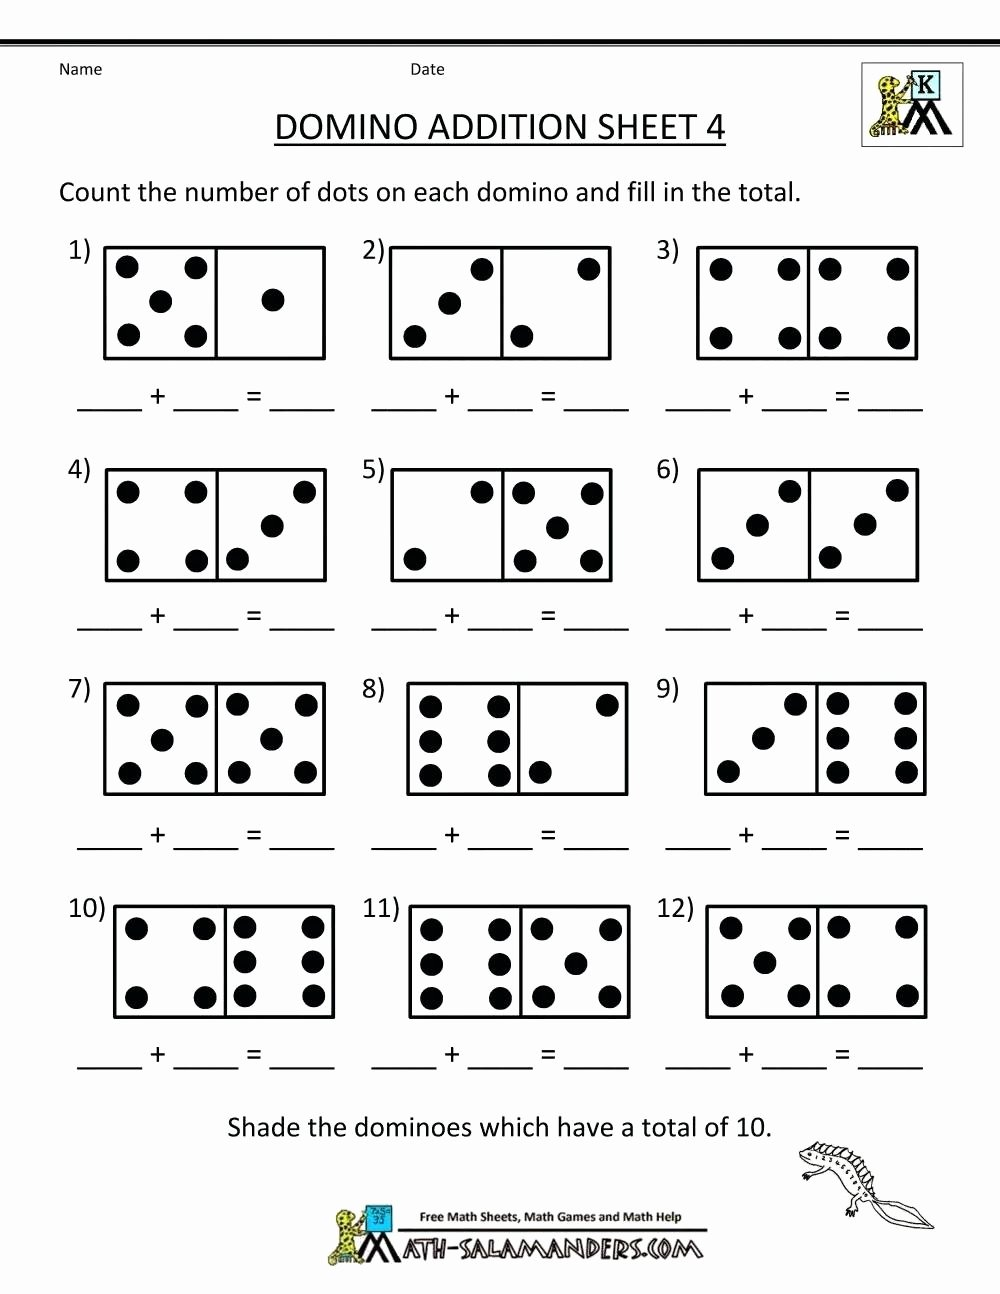 Free Math Worksheets for Preschoolers Kids Math Worksheet Math Addition Games for First Grade Free